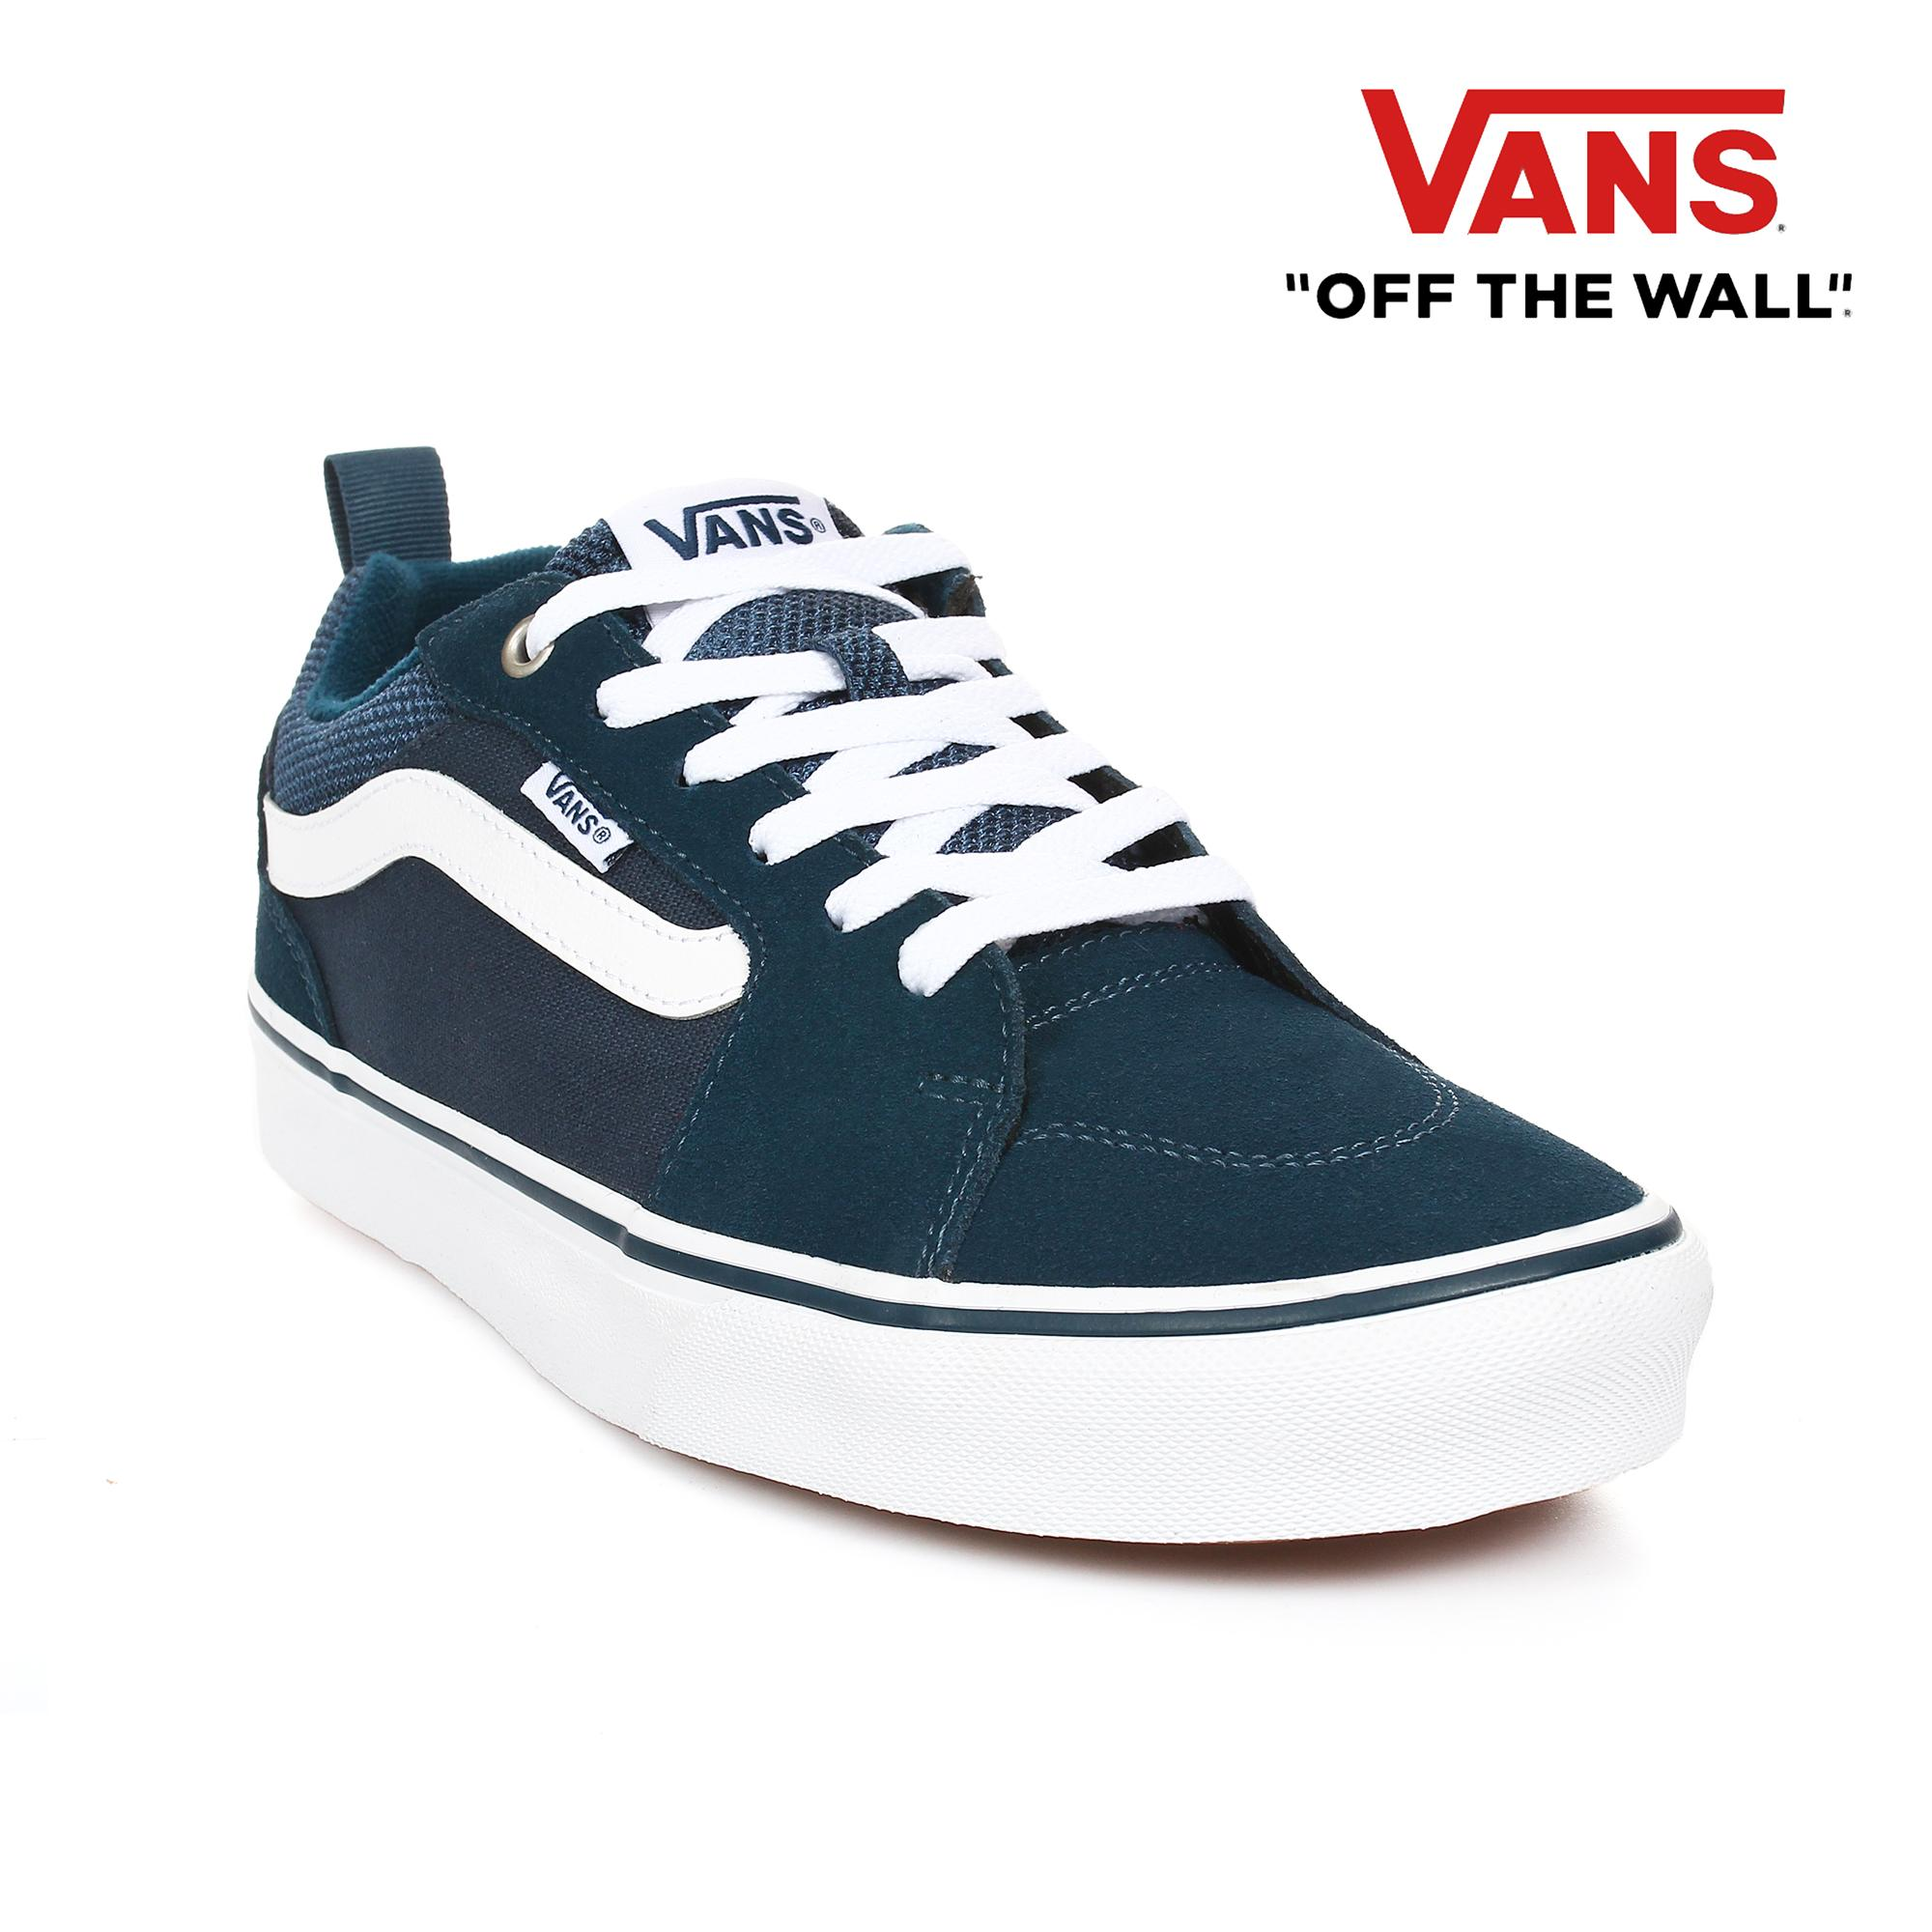 ced57e5f20af86 Vans Shoes for Men Philippines - Vans Men s Shoes for sale - prices ...